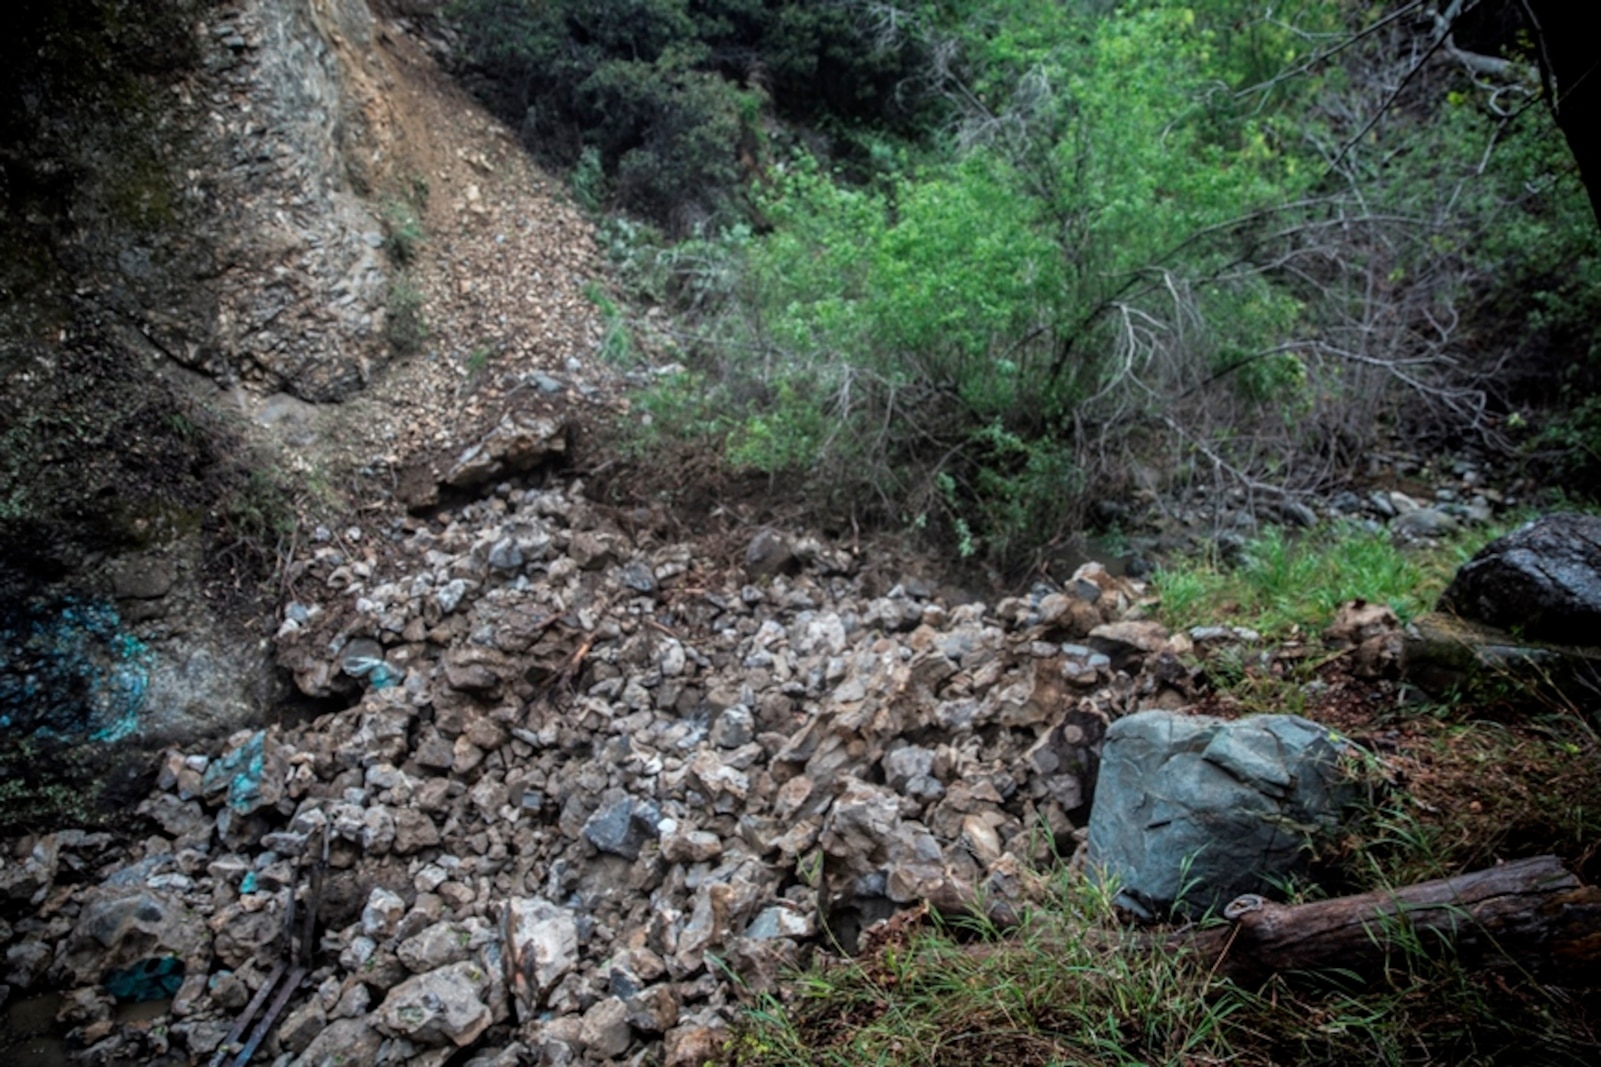 The aftermath of one of the dams that was demolished by U.S. Marines with 7th Engineer Support Battalion, 1st Marine Logistics Group, at Cleveland National Forest in Silverado, Calif., on March 22, 2017. The purpose of demolishing the dams is to remove all material from 10 dams, allow fish to pass unobstructed and return the land to its natural state. (U.S. Marine Corps photo by Lance Cpl. Adam Dublinske)